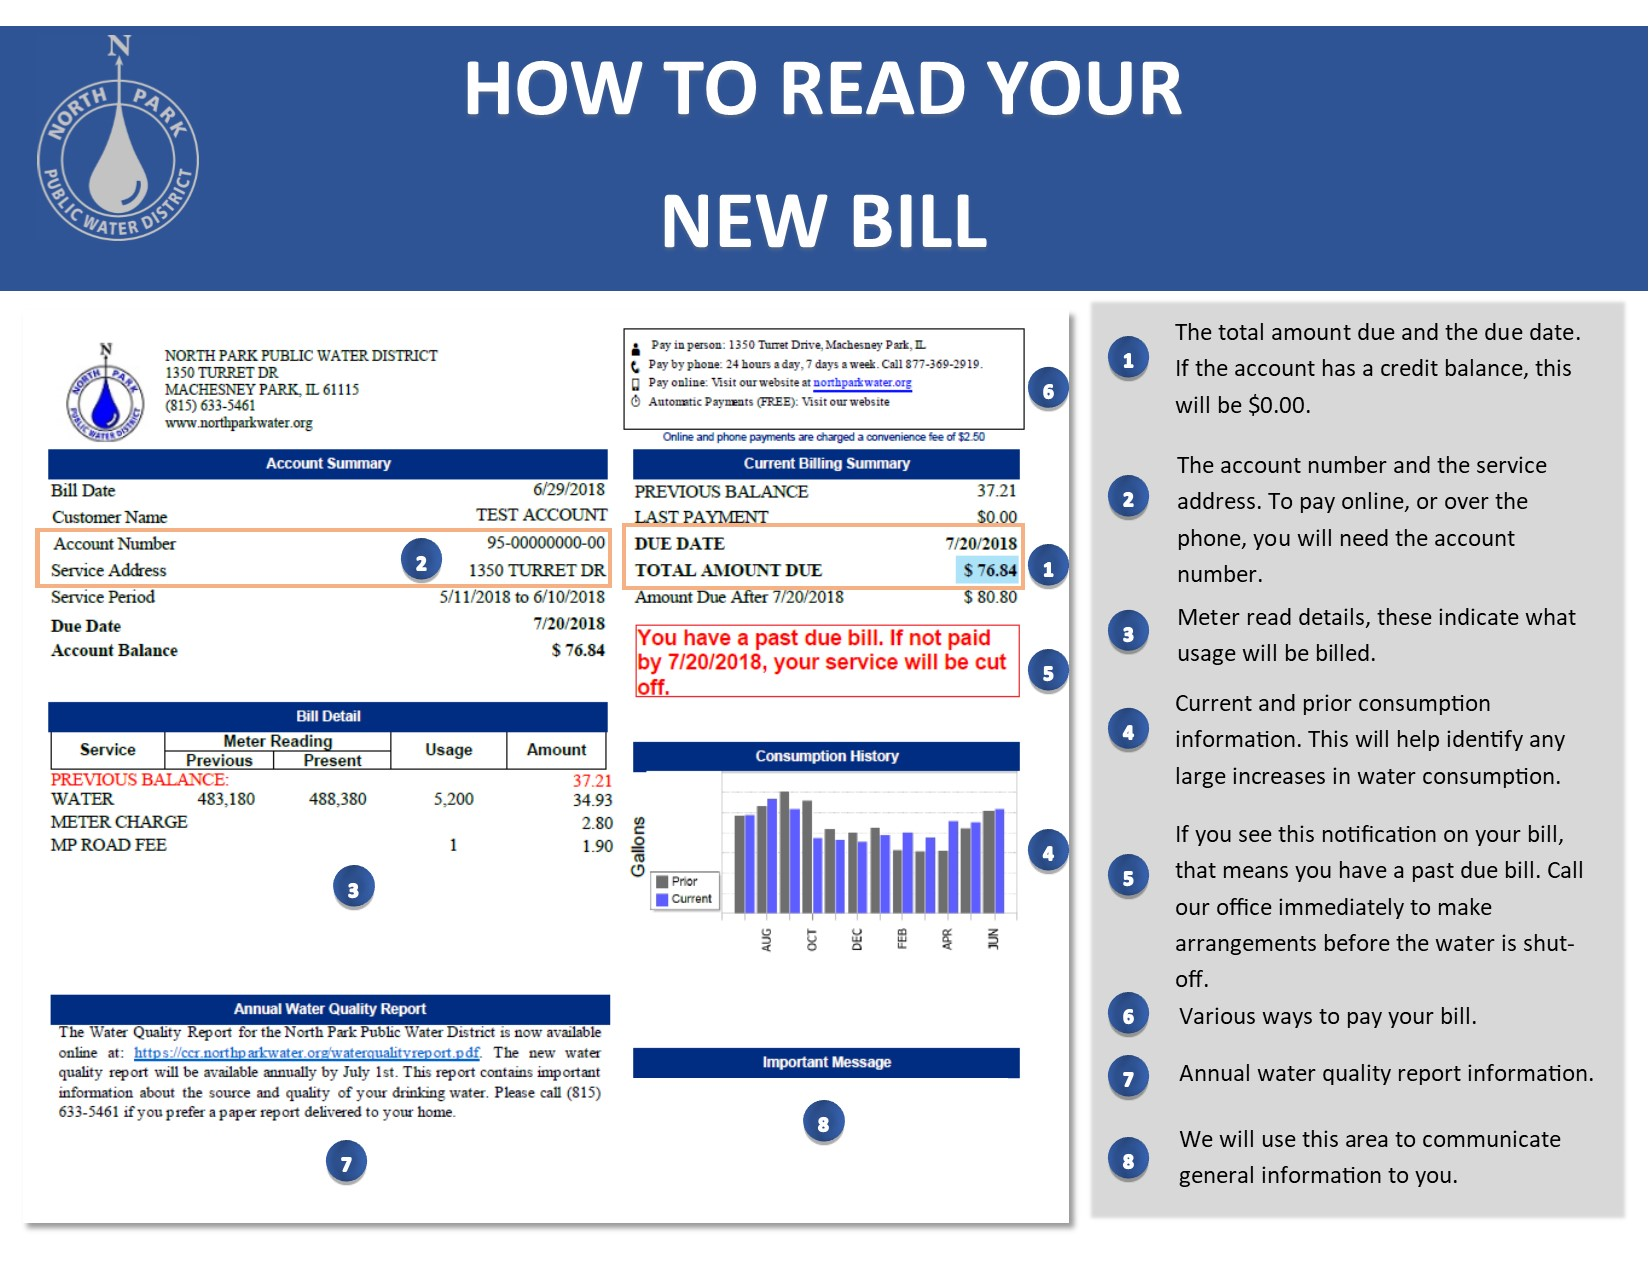 How to Read Your New Bill